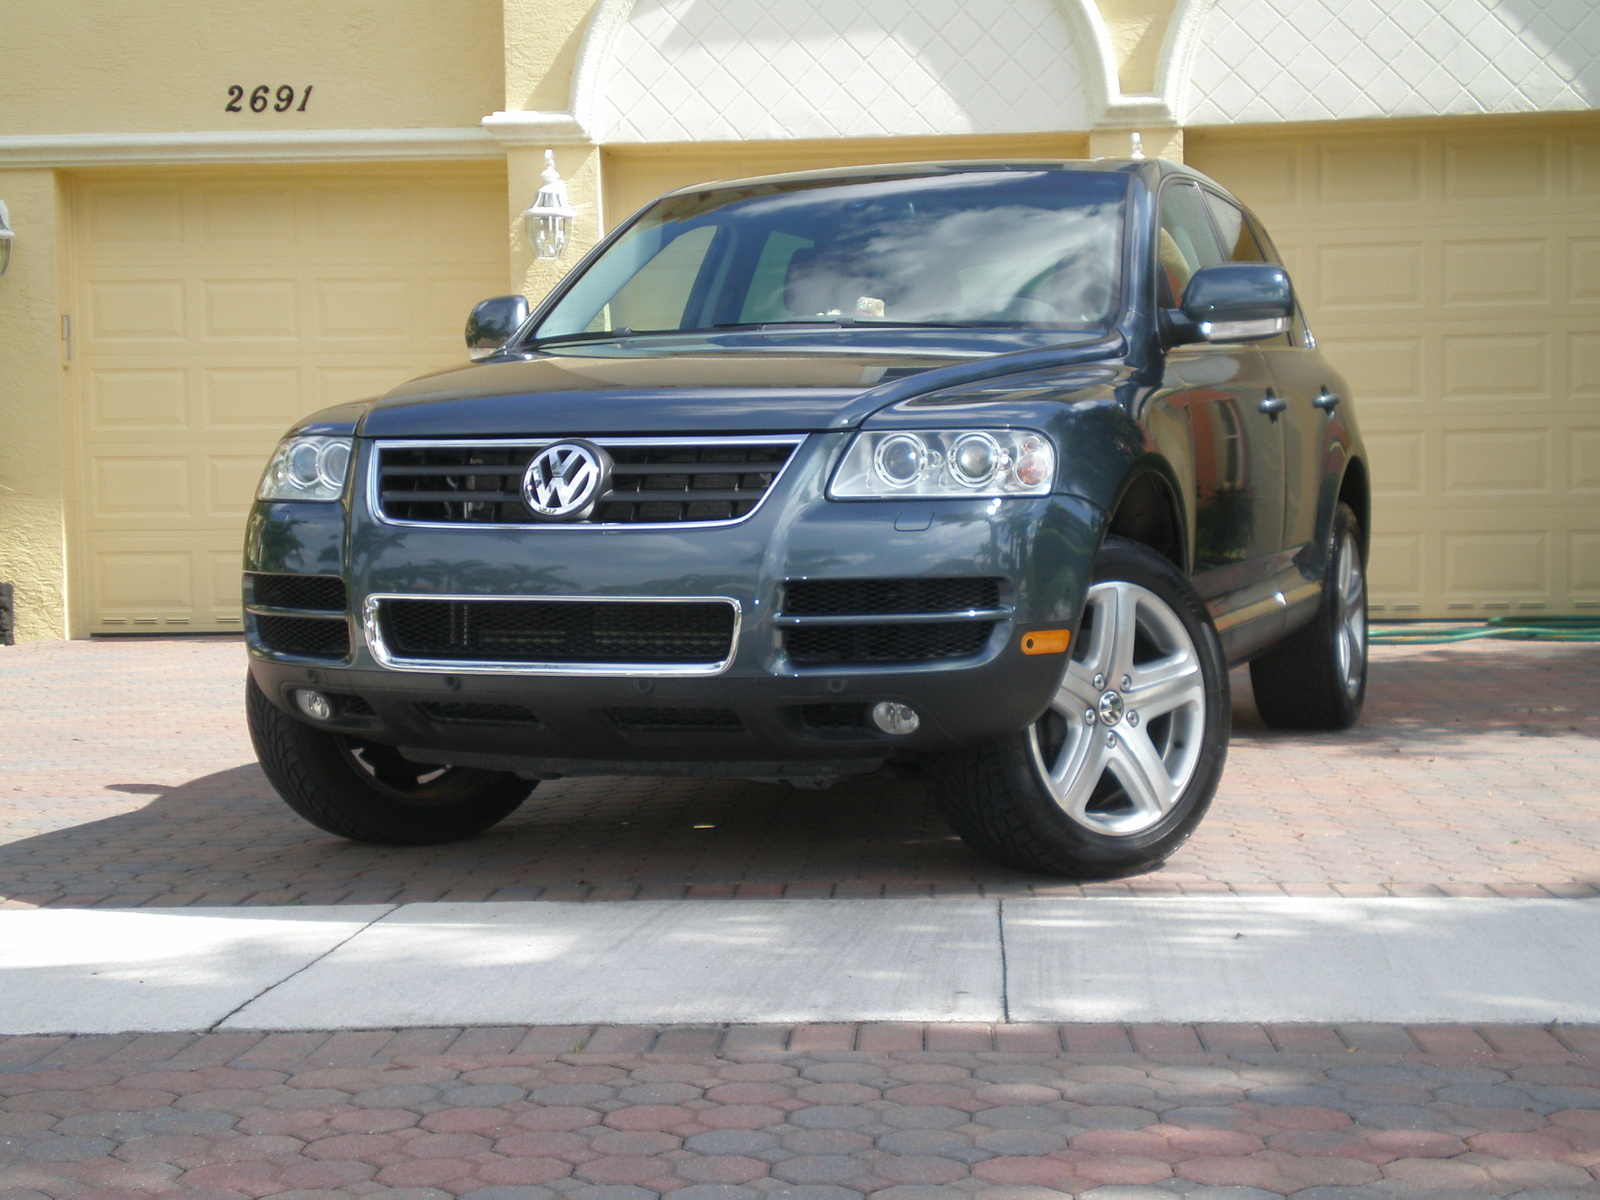 2006 volkswagen touareg pictures cargurus. Black Bedroom Furniture Sets. Home Design Ideas